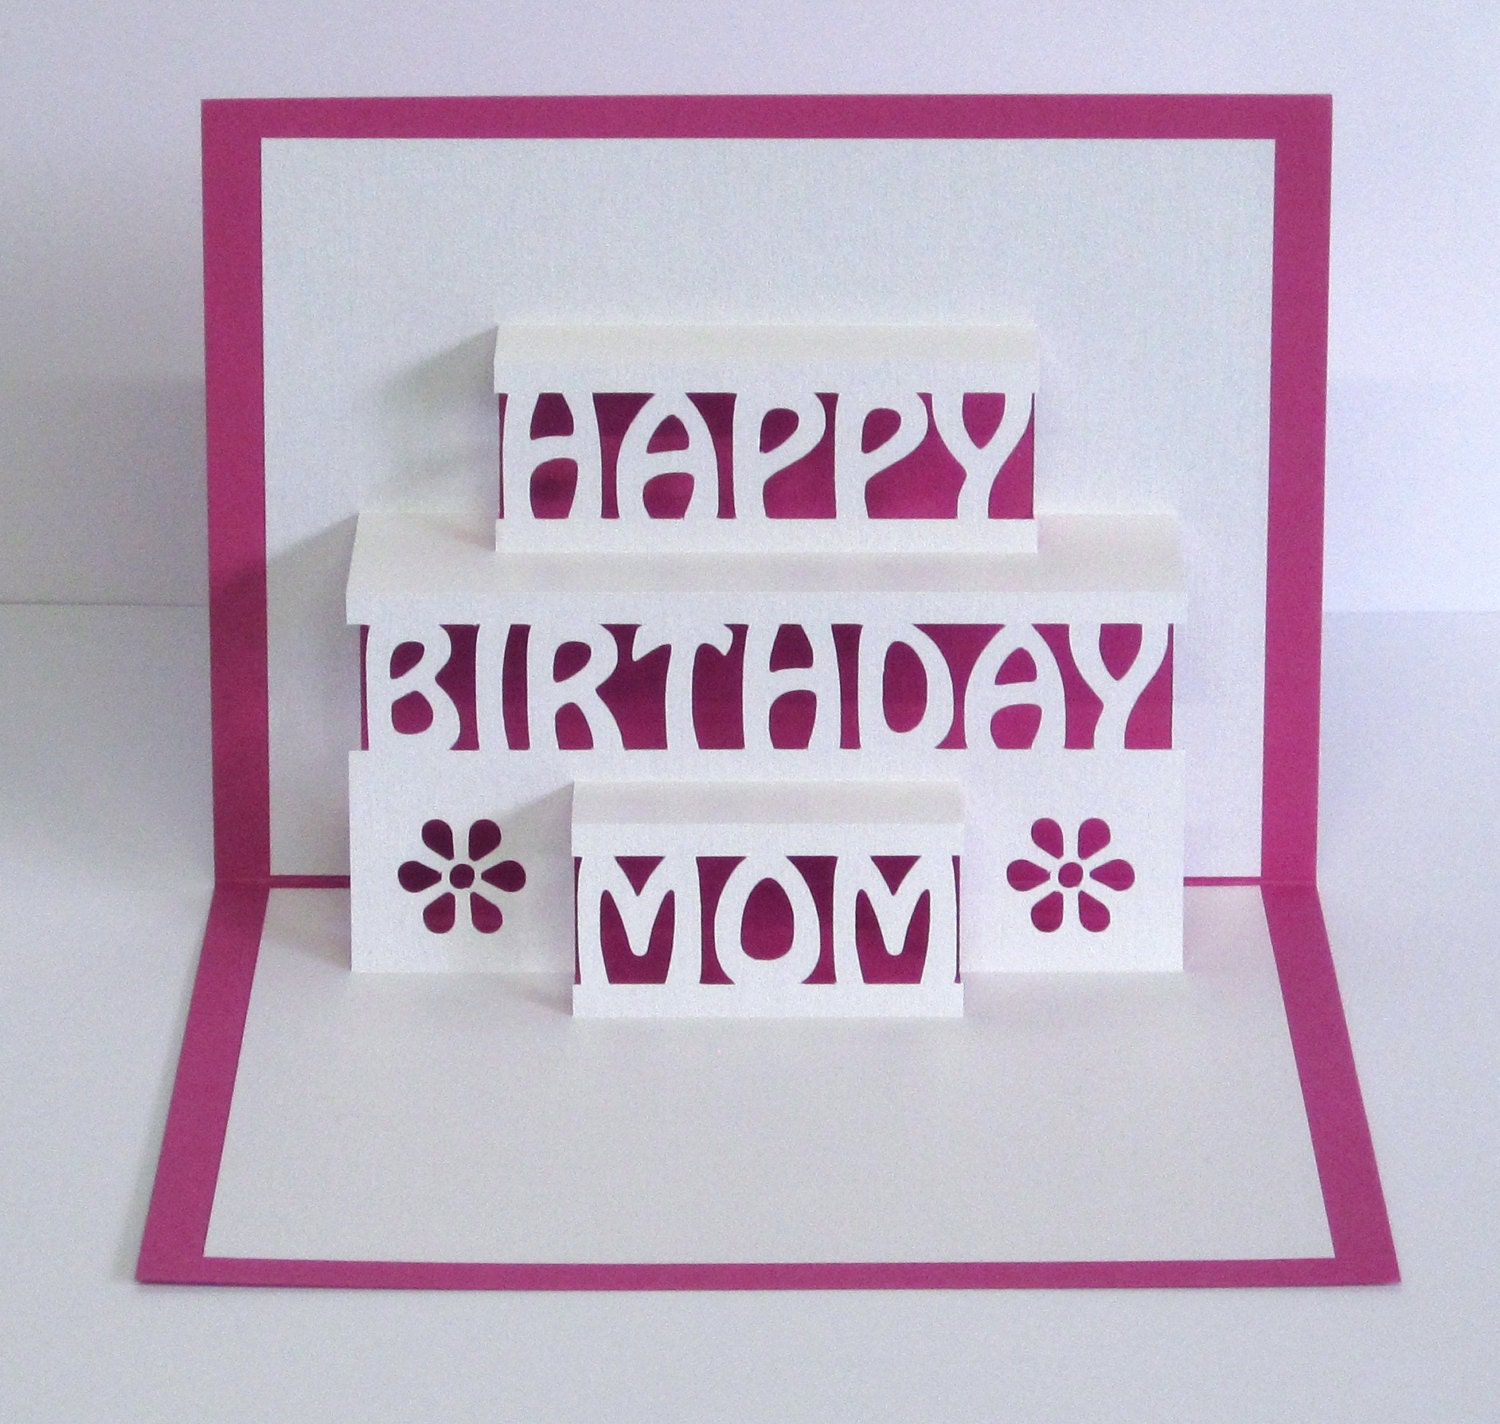 Mom Birthday Card 3D Pop Up Happy Birthday Mom Card